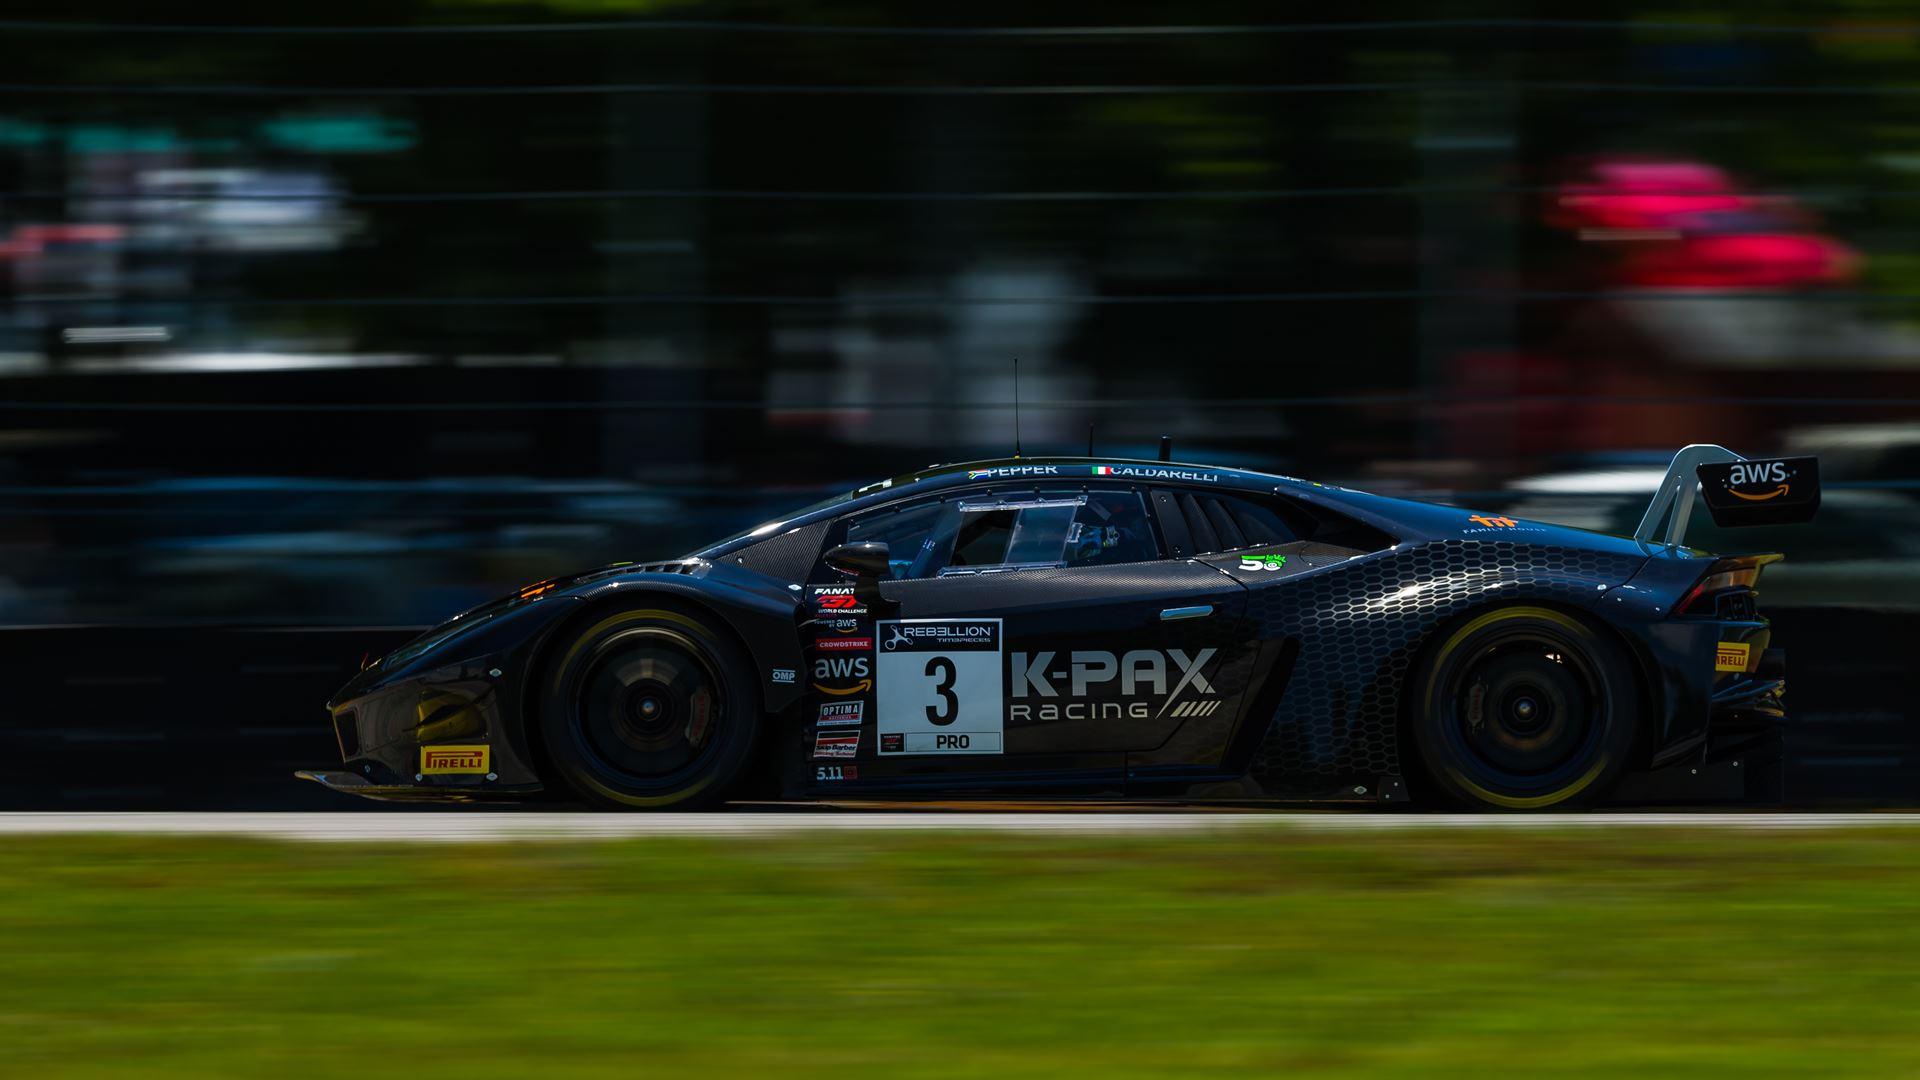 Lamborghini makes history with 100th GT3 victory thanks to another GT World Challenge America success - Image 8